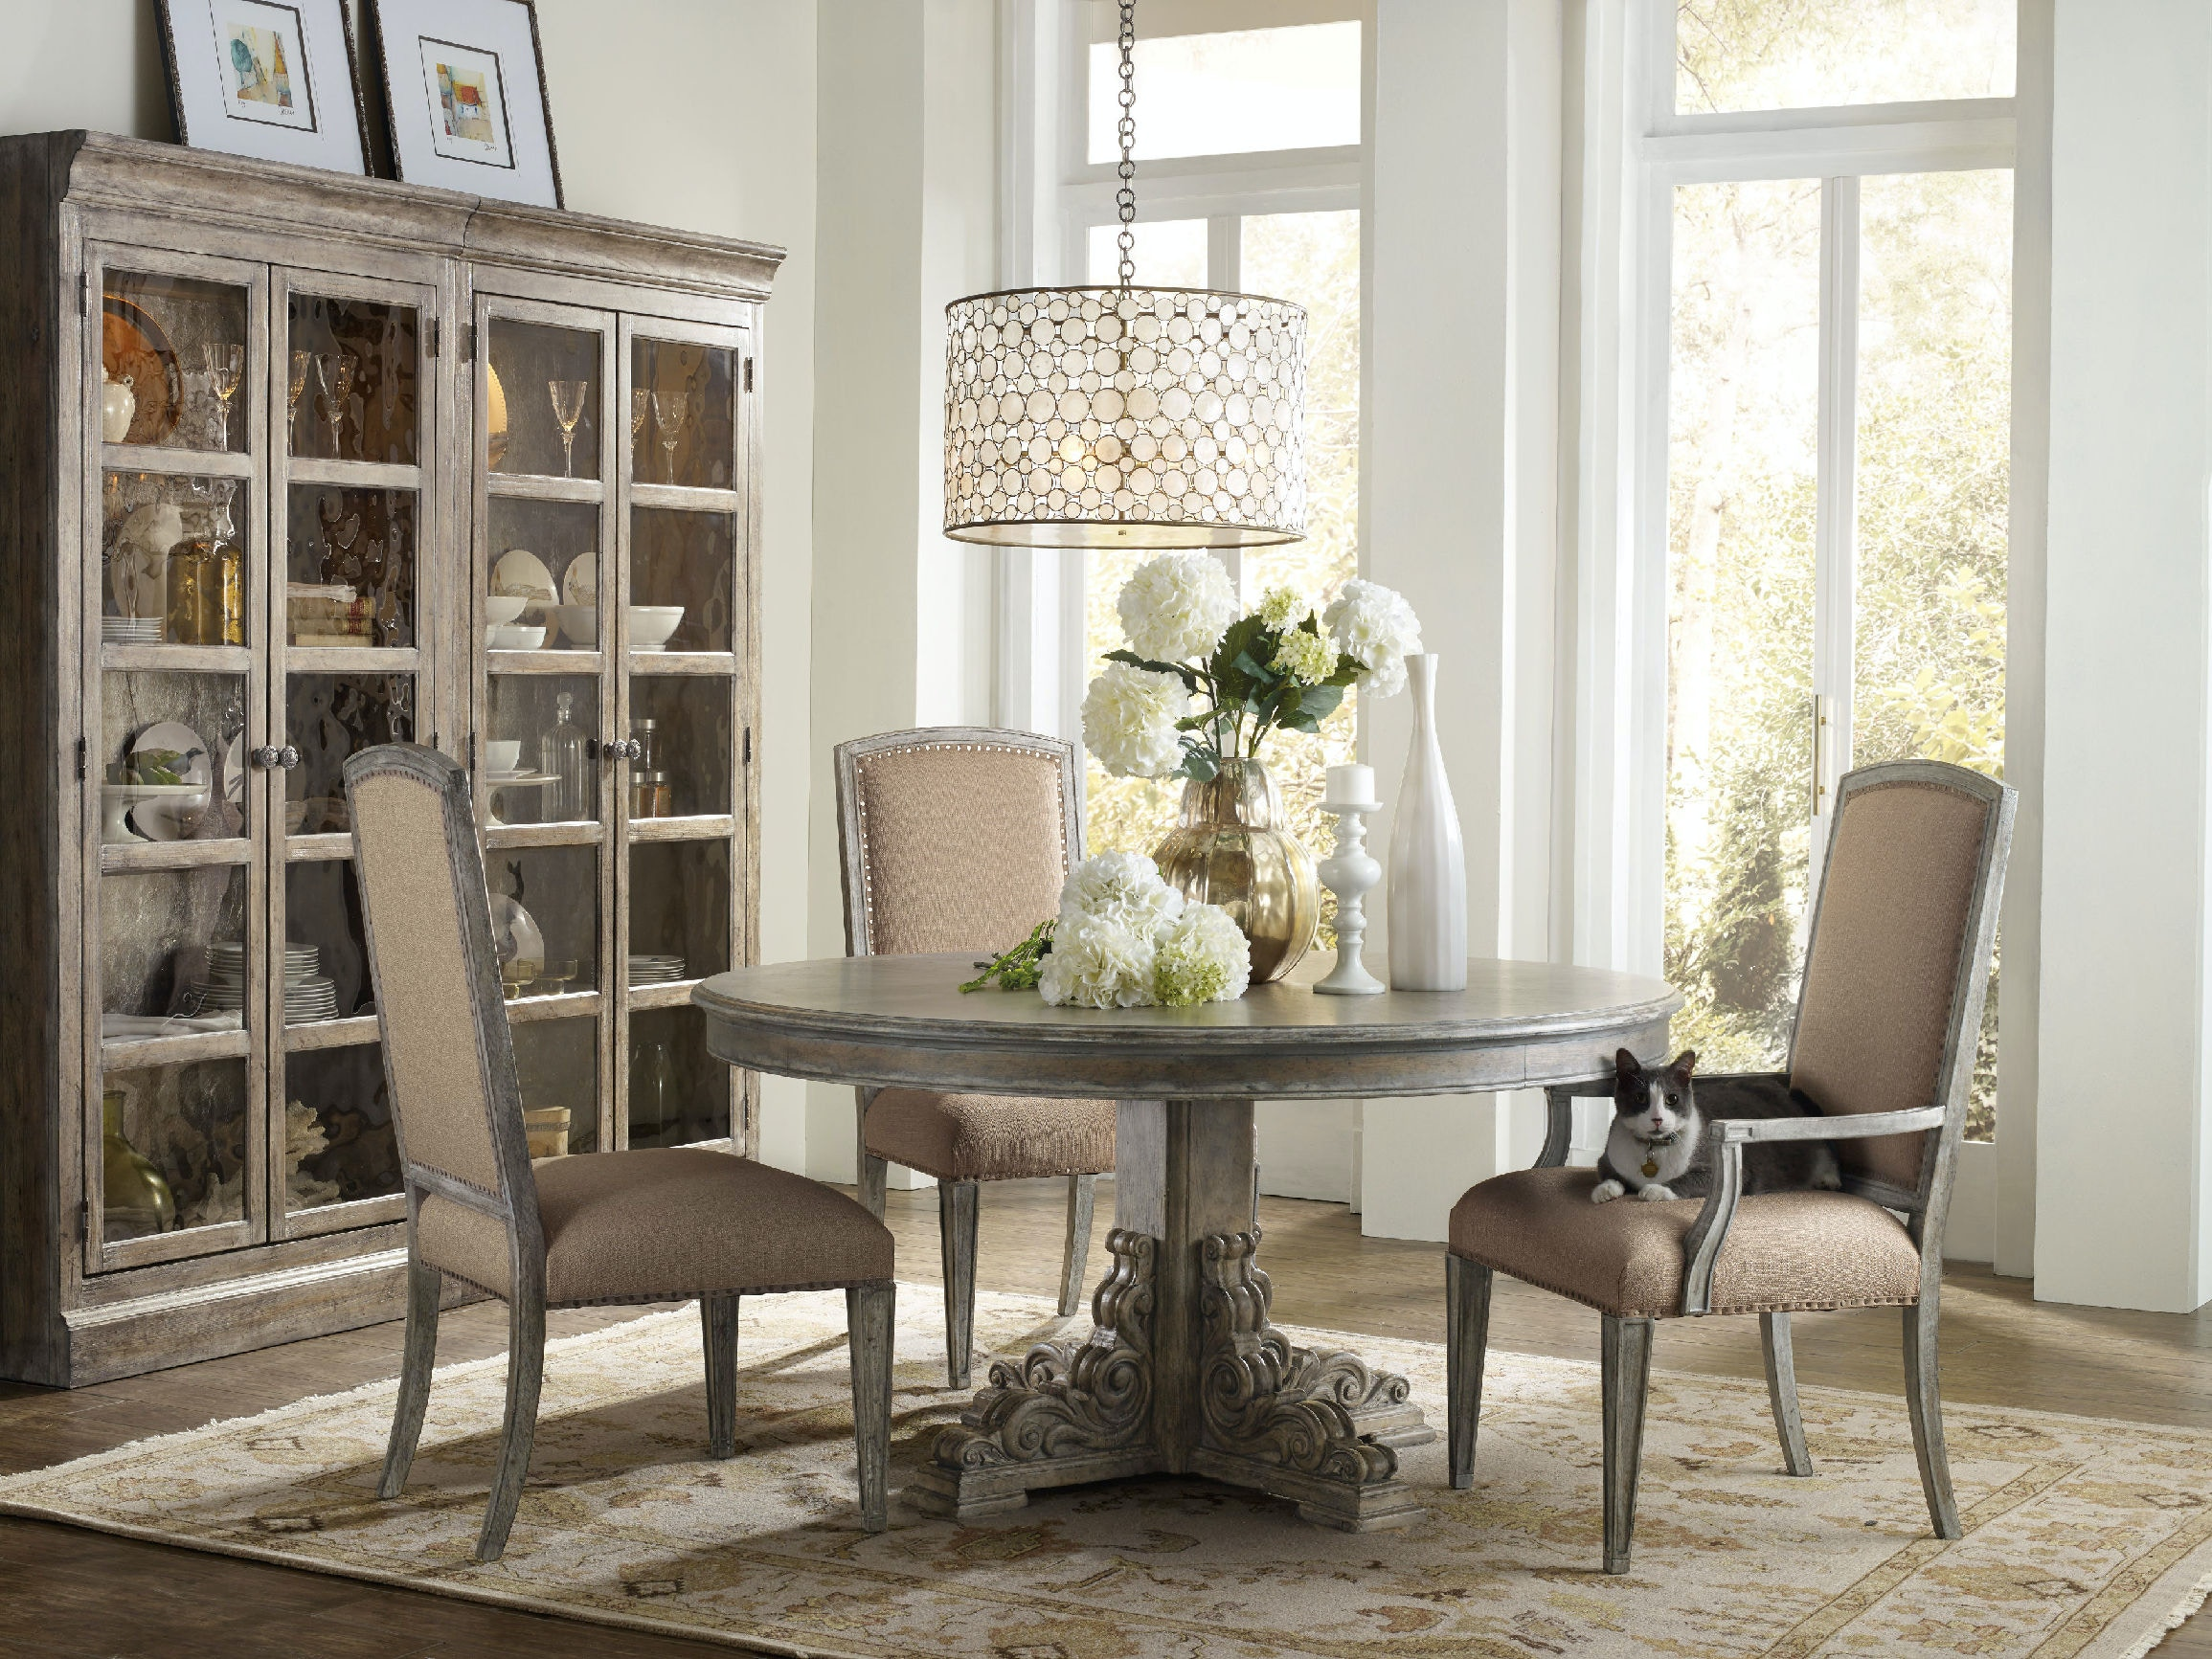 Dining Arm Chairs Upholstered